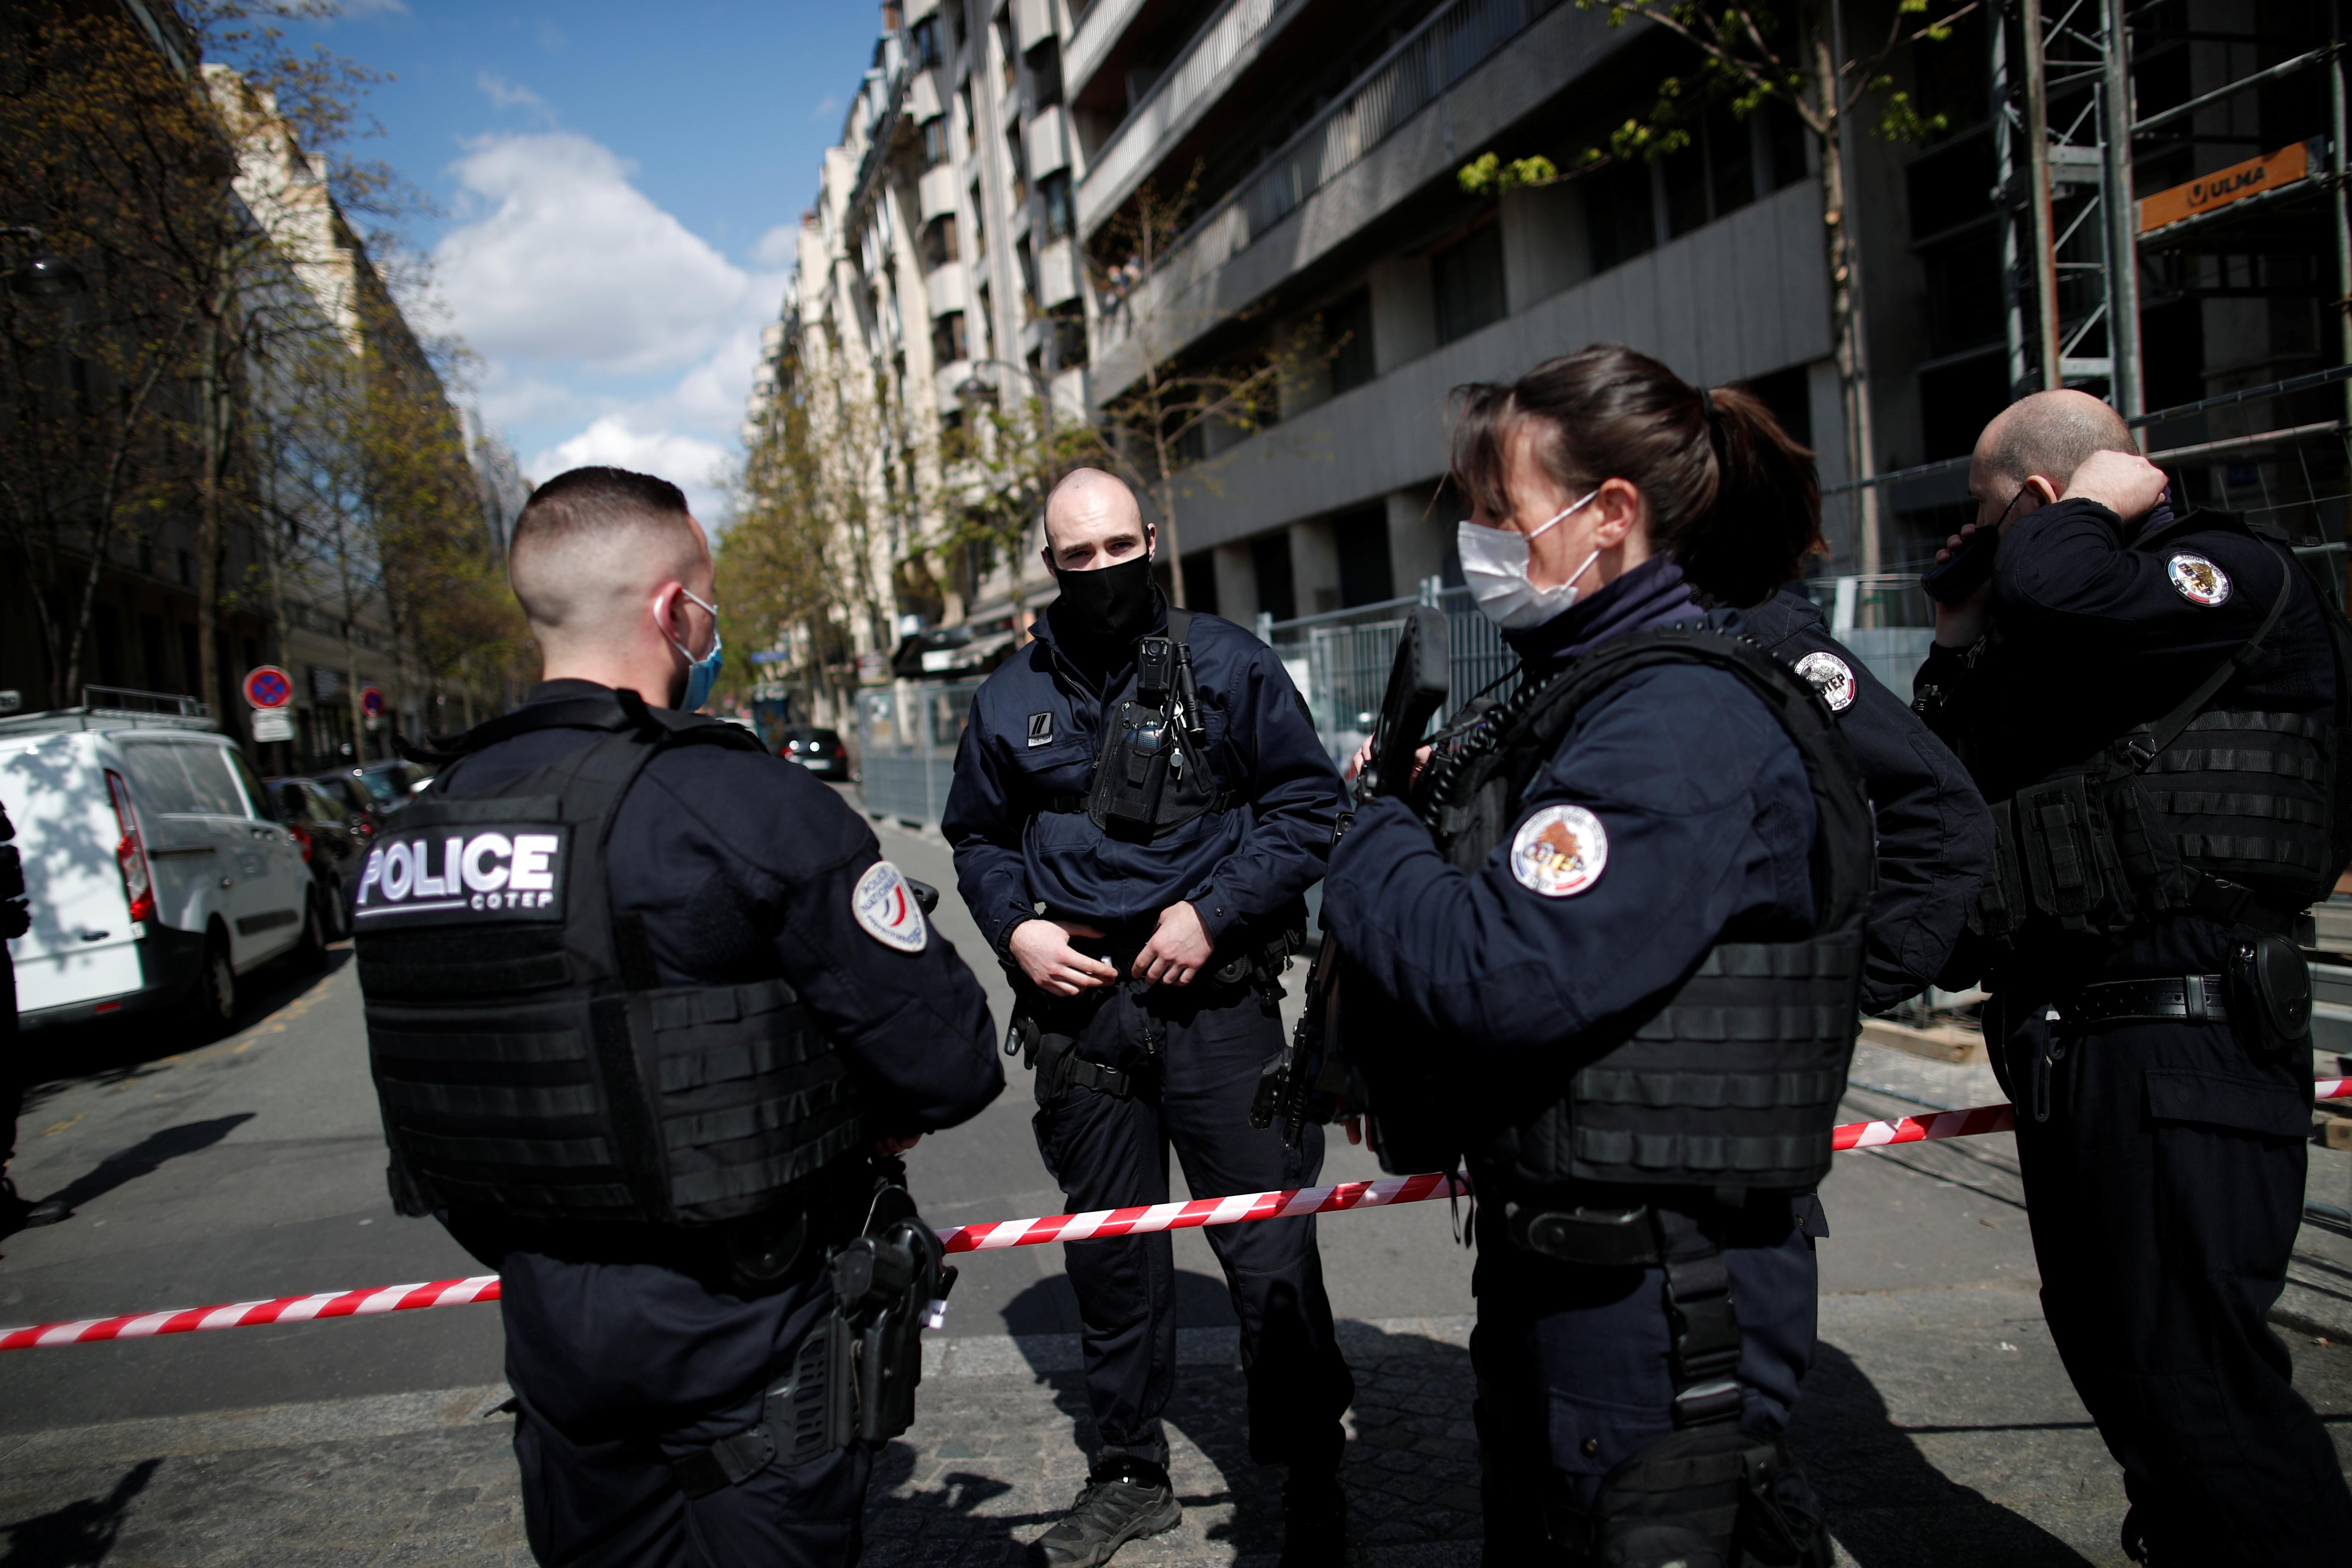 French police secure the area after one person was shot dead and one injured in front of the Henry Dunant hospital in Paris, France, April 12, 2021. REUTERS/Benoit Tessier